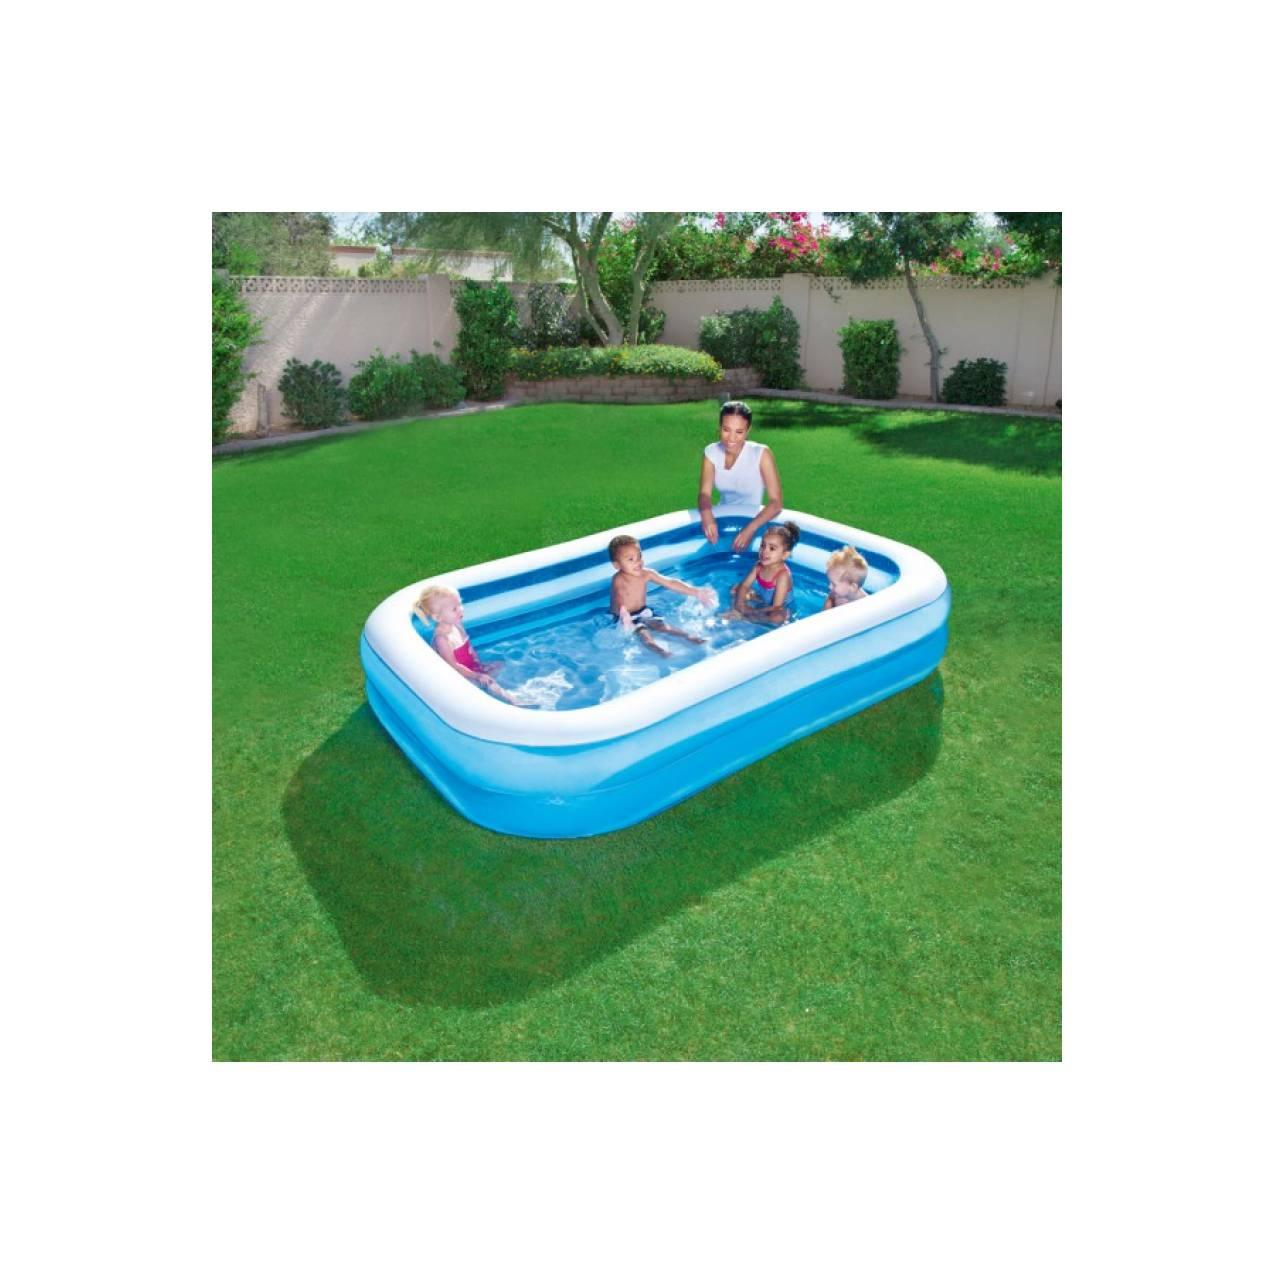 Grosir kolam renang bestway 54006|inflatable swimming pool|kolam renan